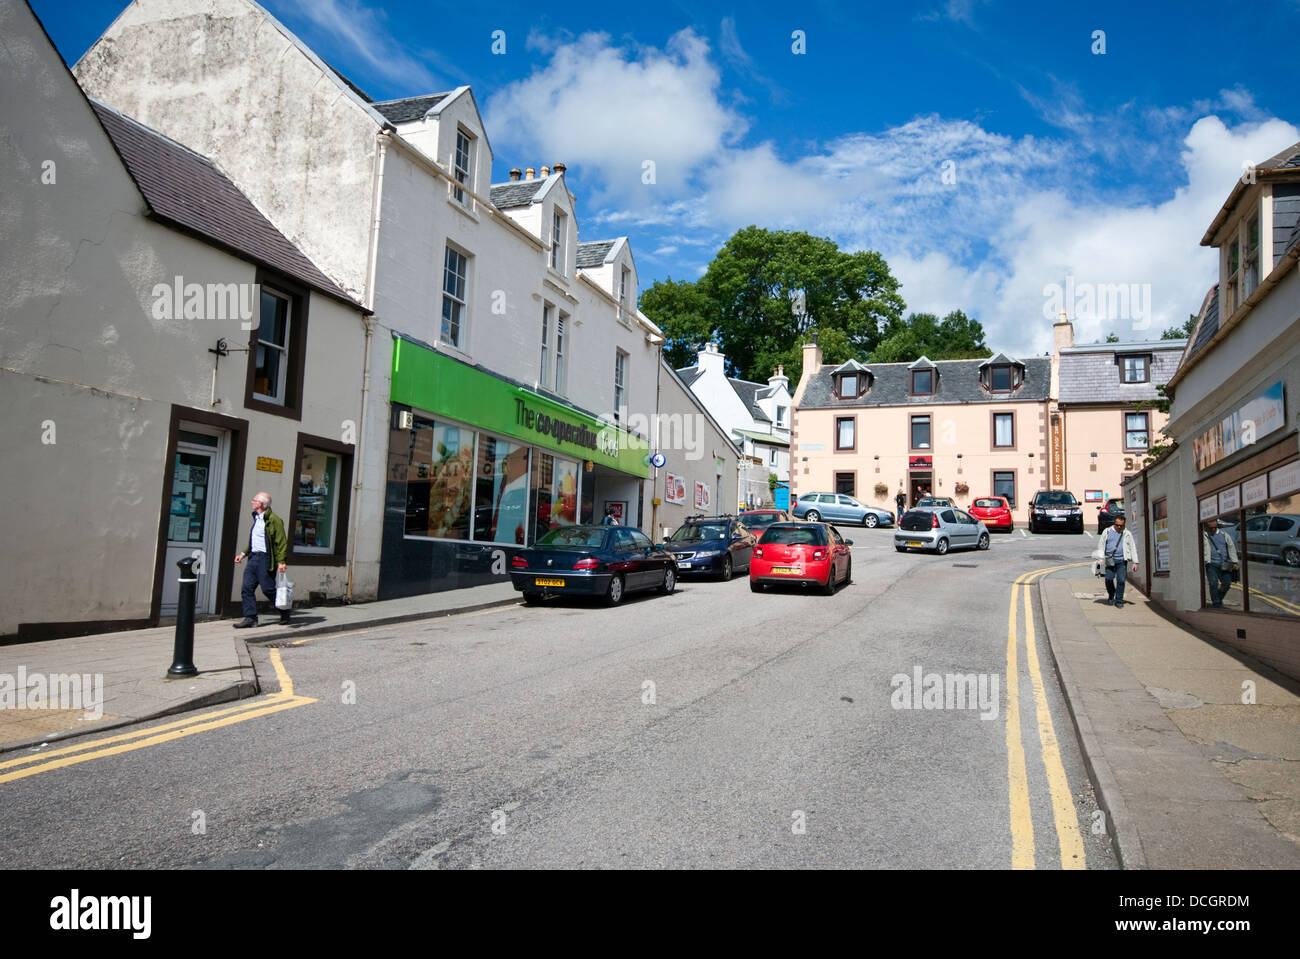 The main road through the town centre of Portree on the Isle of Skye, Scotland, UK - Stock Image